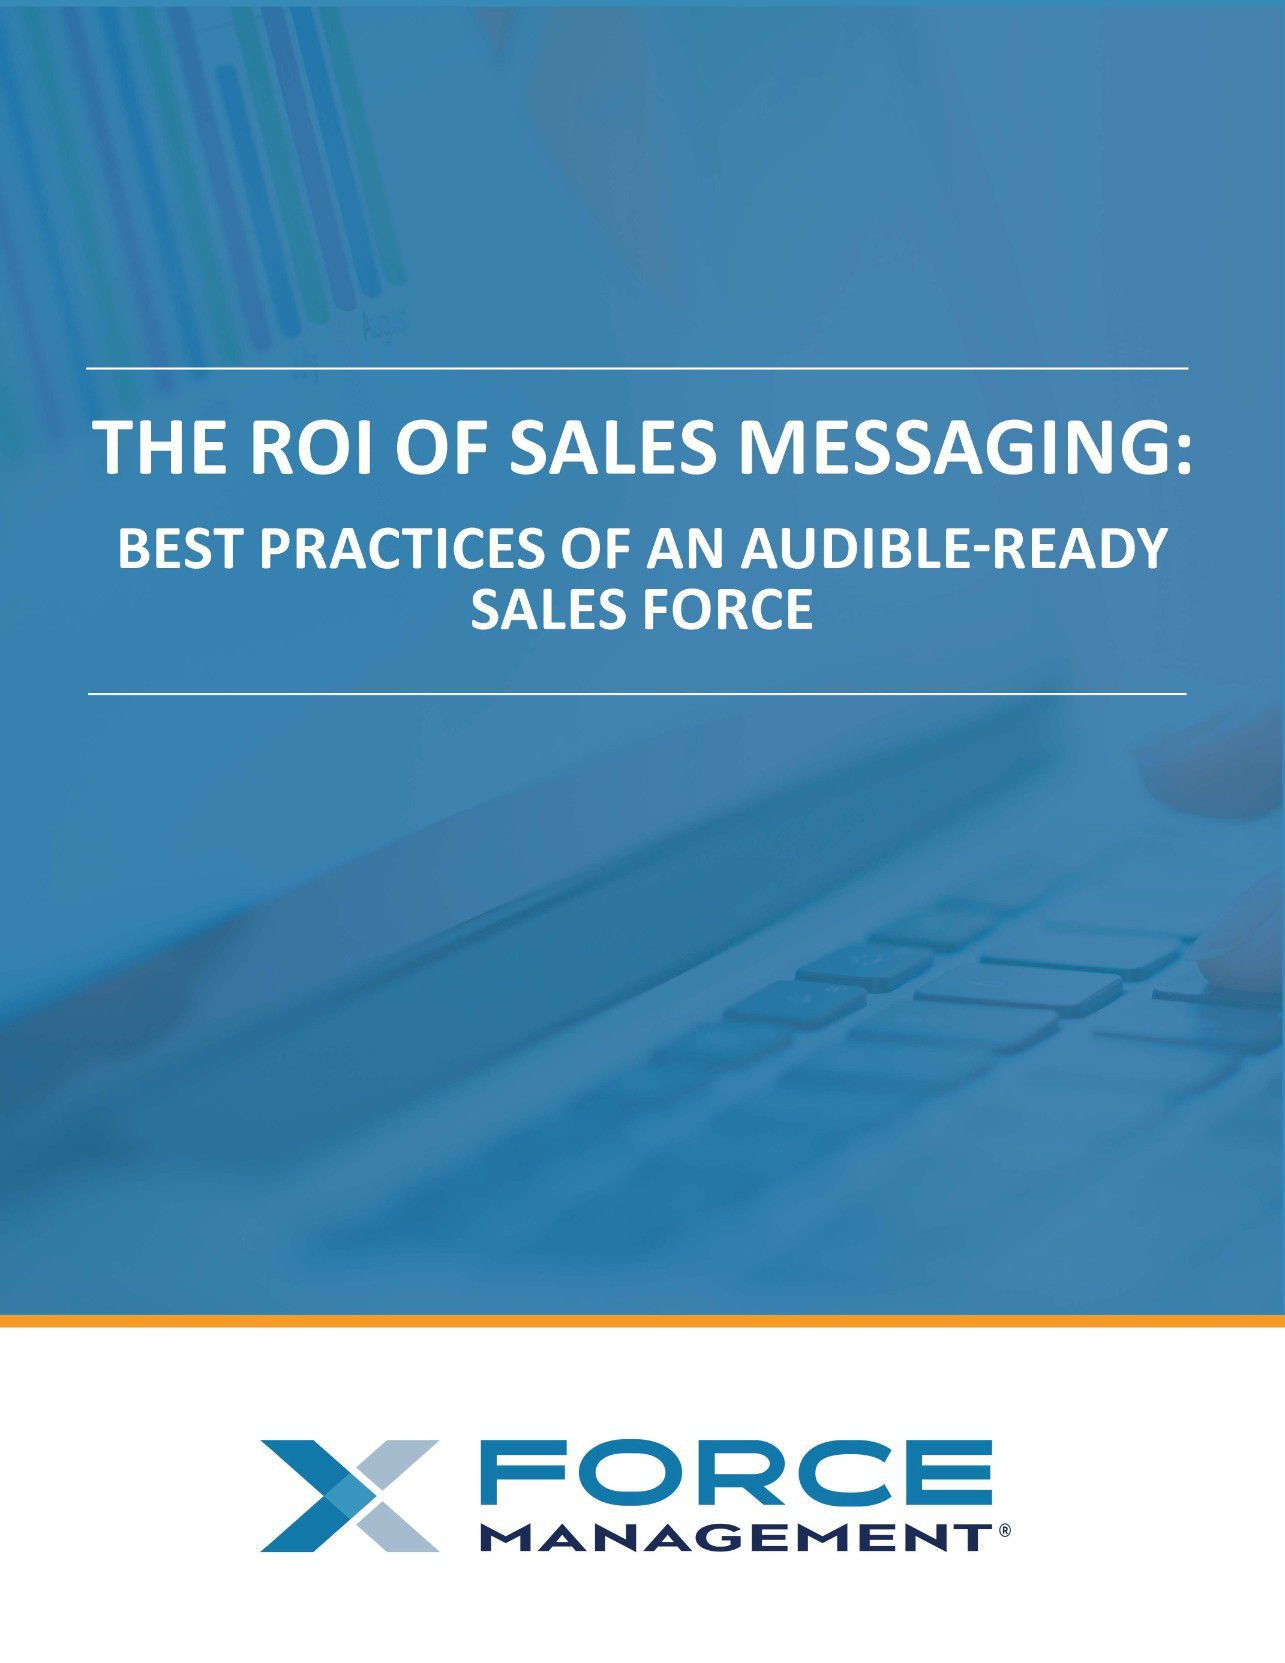 ROI-Sales-Messaging IMAGE.jpg